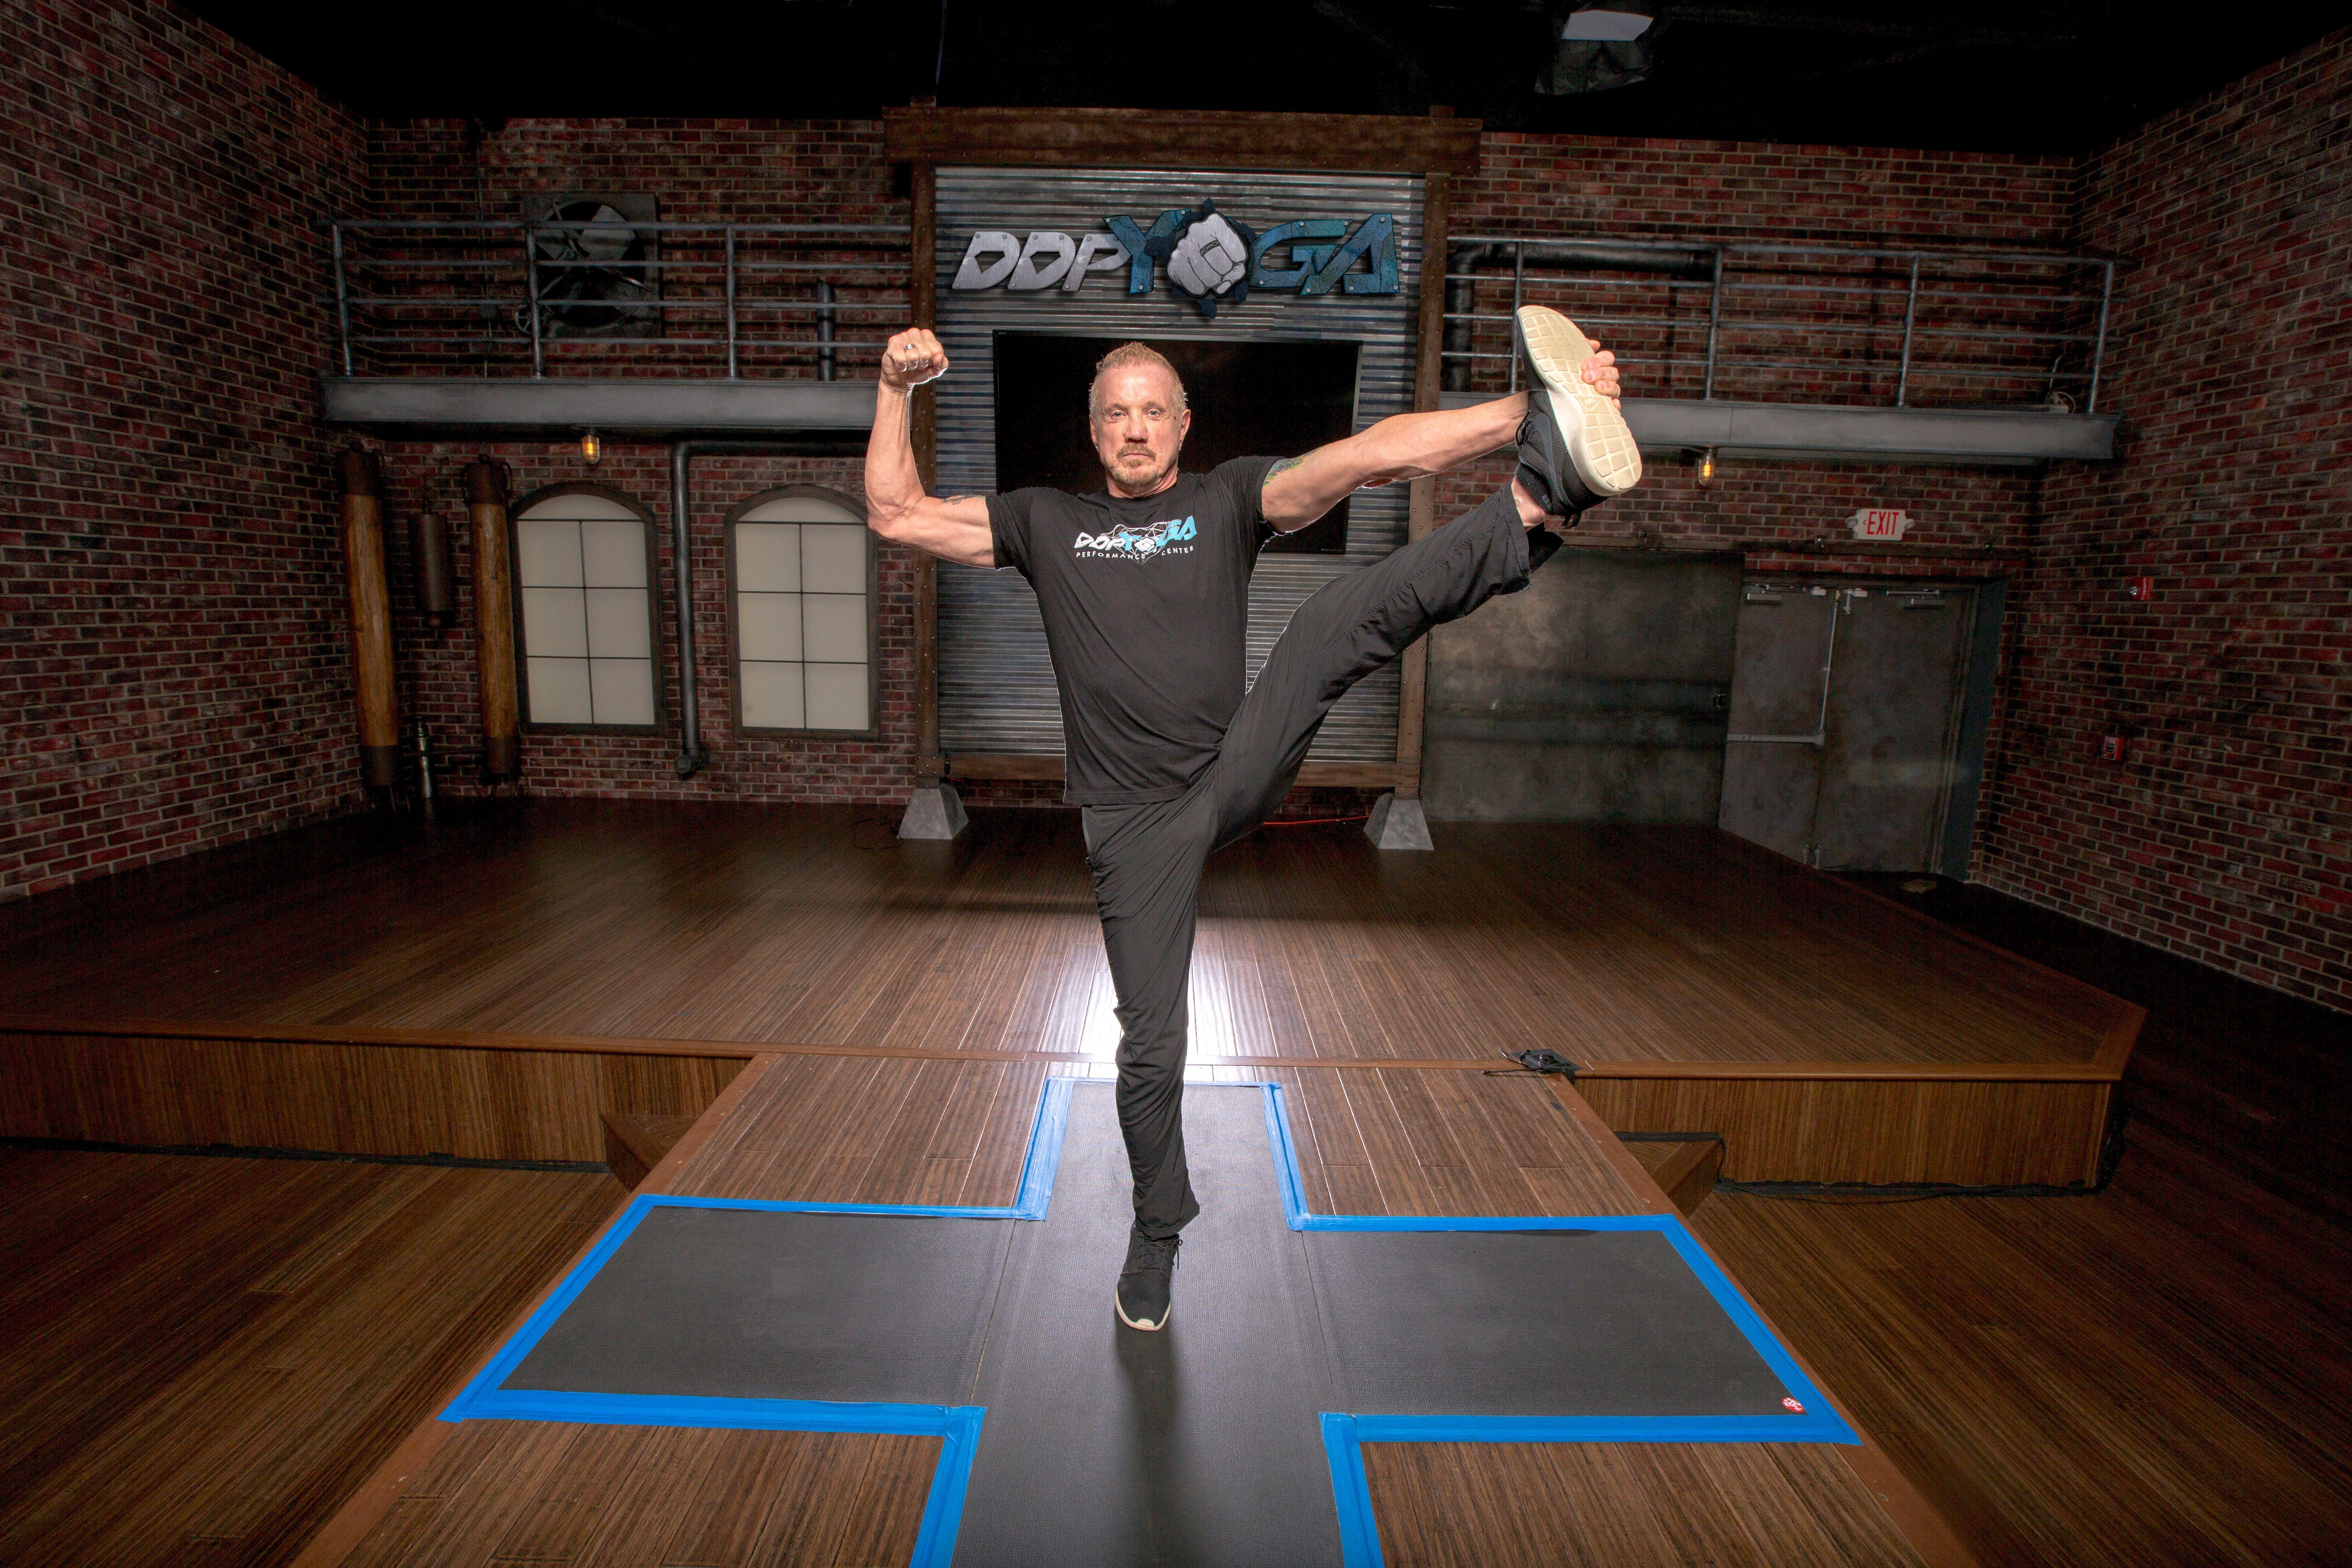 From the wrestling mat to the yoga mat: The story of DDP Yoga